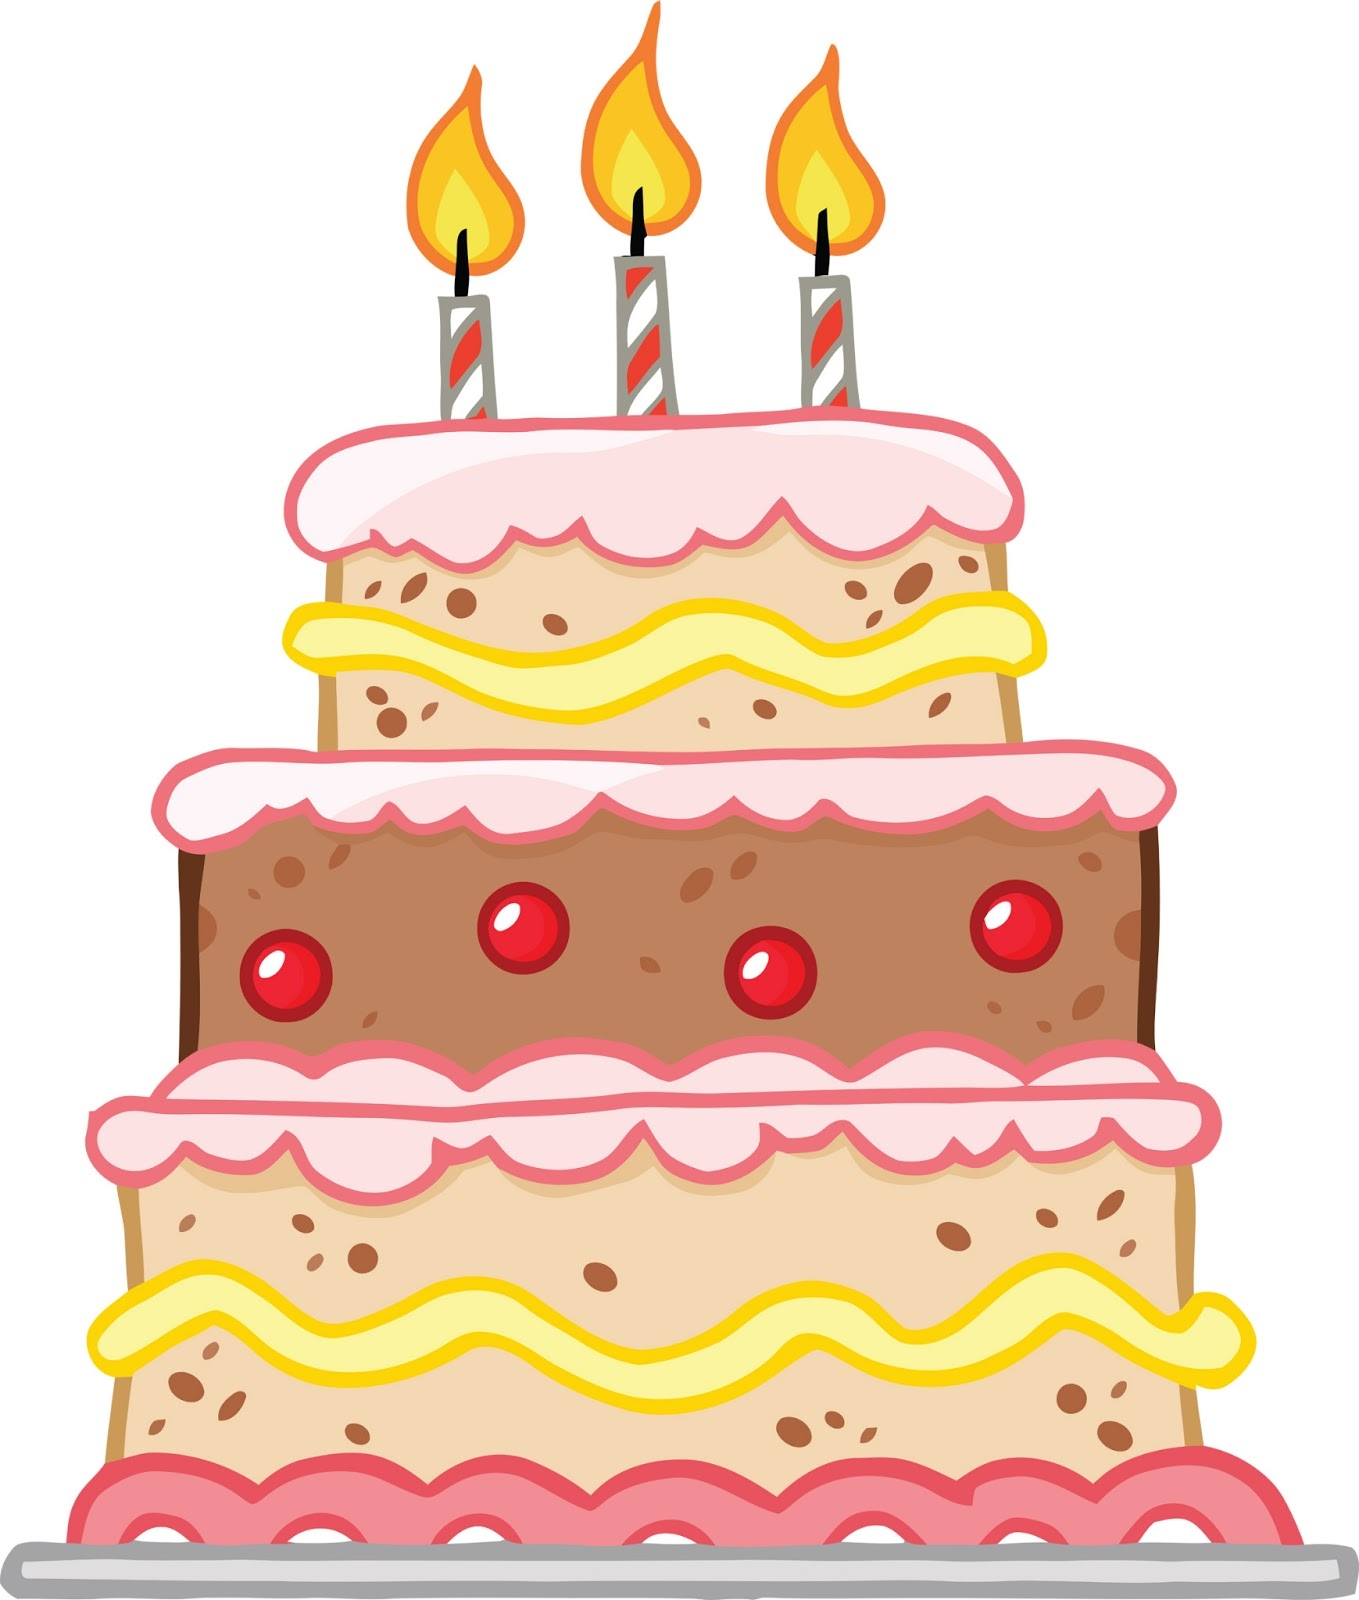 Birthday cake hat clipart png freeuse download Birthday cake hat clipart - ClipartFest png freeuse download